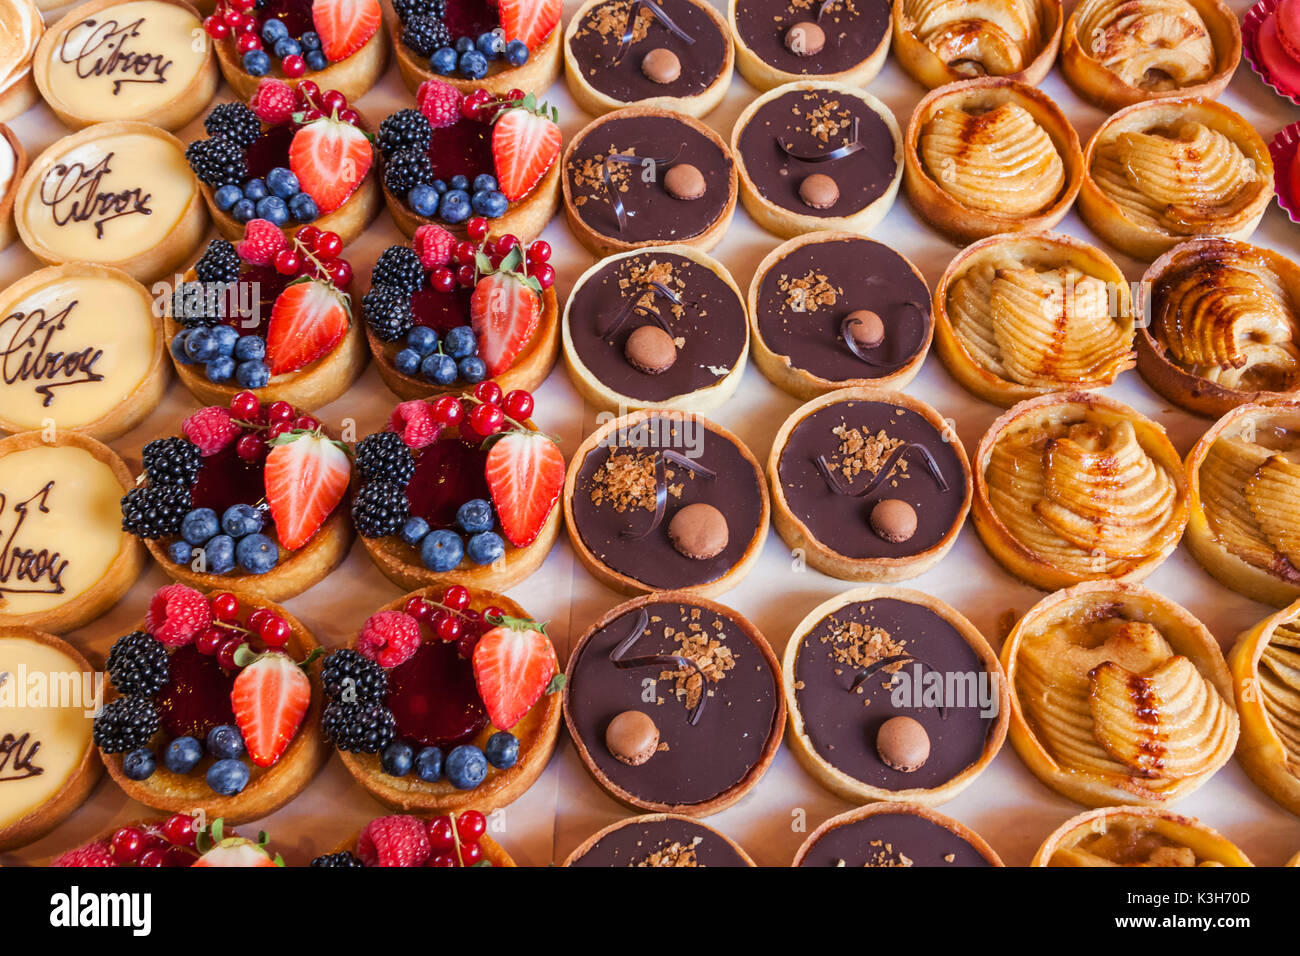 England, London, Southwark, Borough Market, Display of French Patisserie - Stock Image